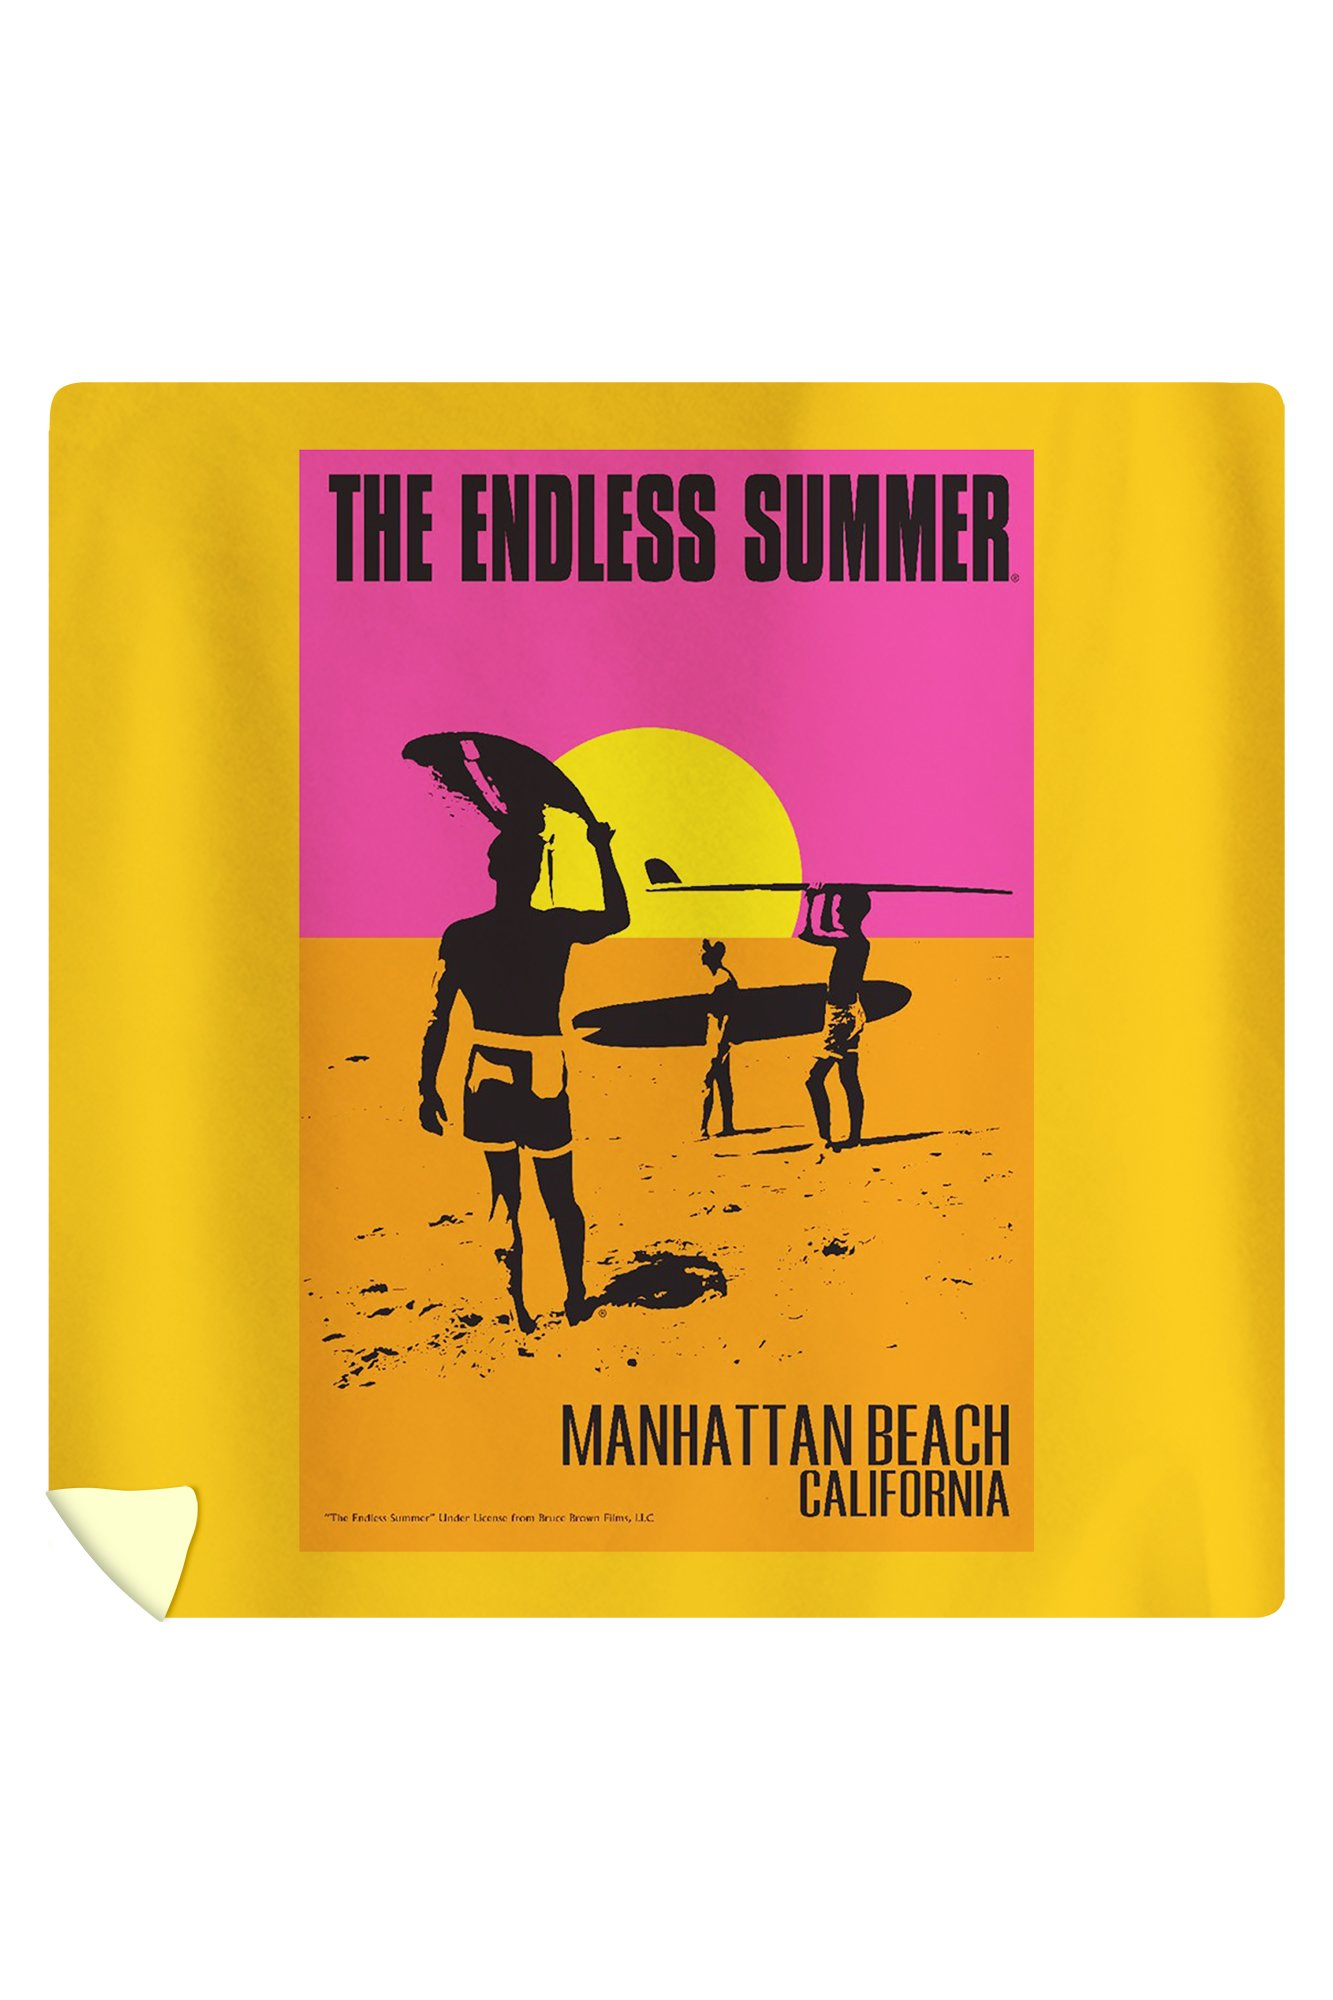 Manhattan Beach, California - The Endless Summer - Original Movie Poster (88x88 Queen Microfiber Duvet Cover)